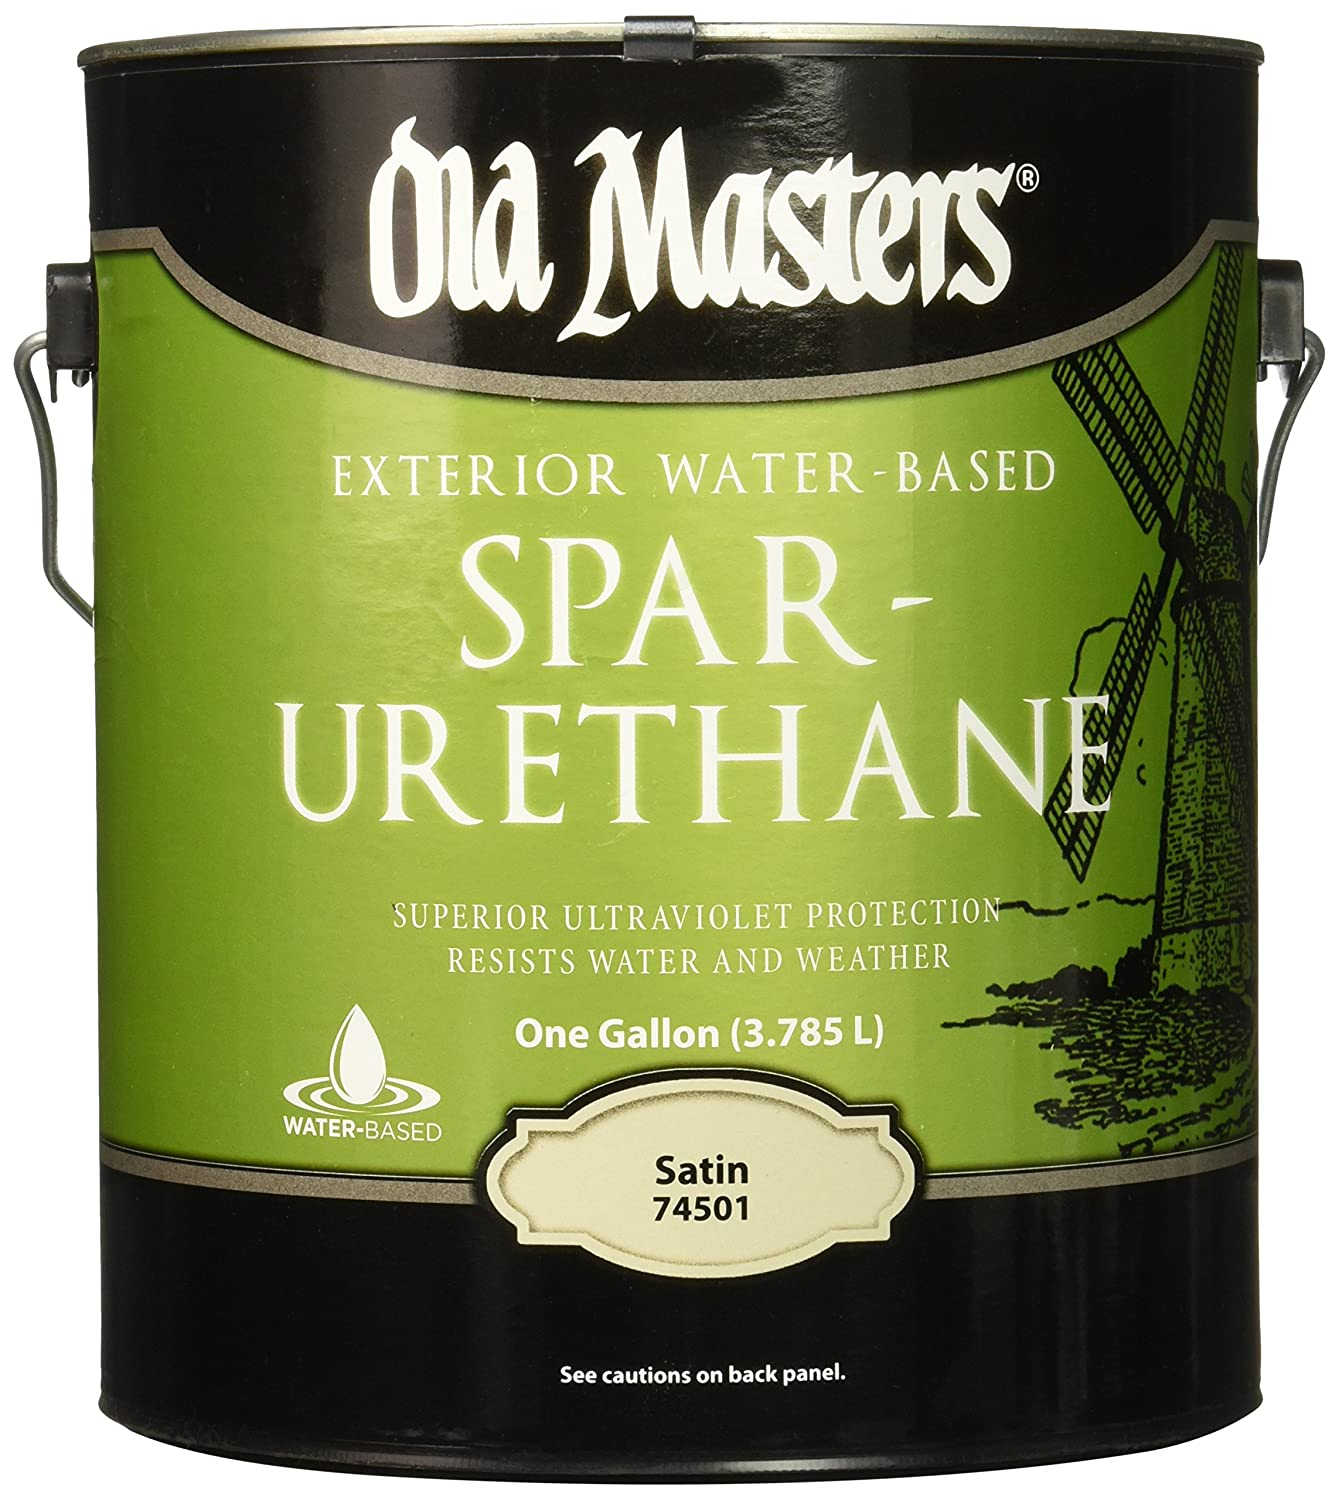 OLD MASTERS 74501 Satin Water Based Spar Urethane